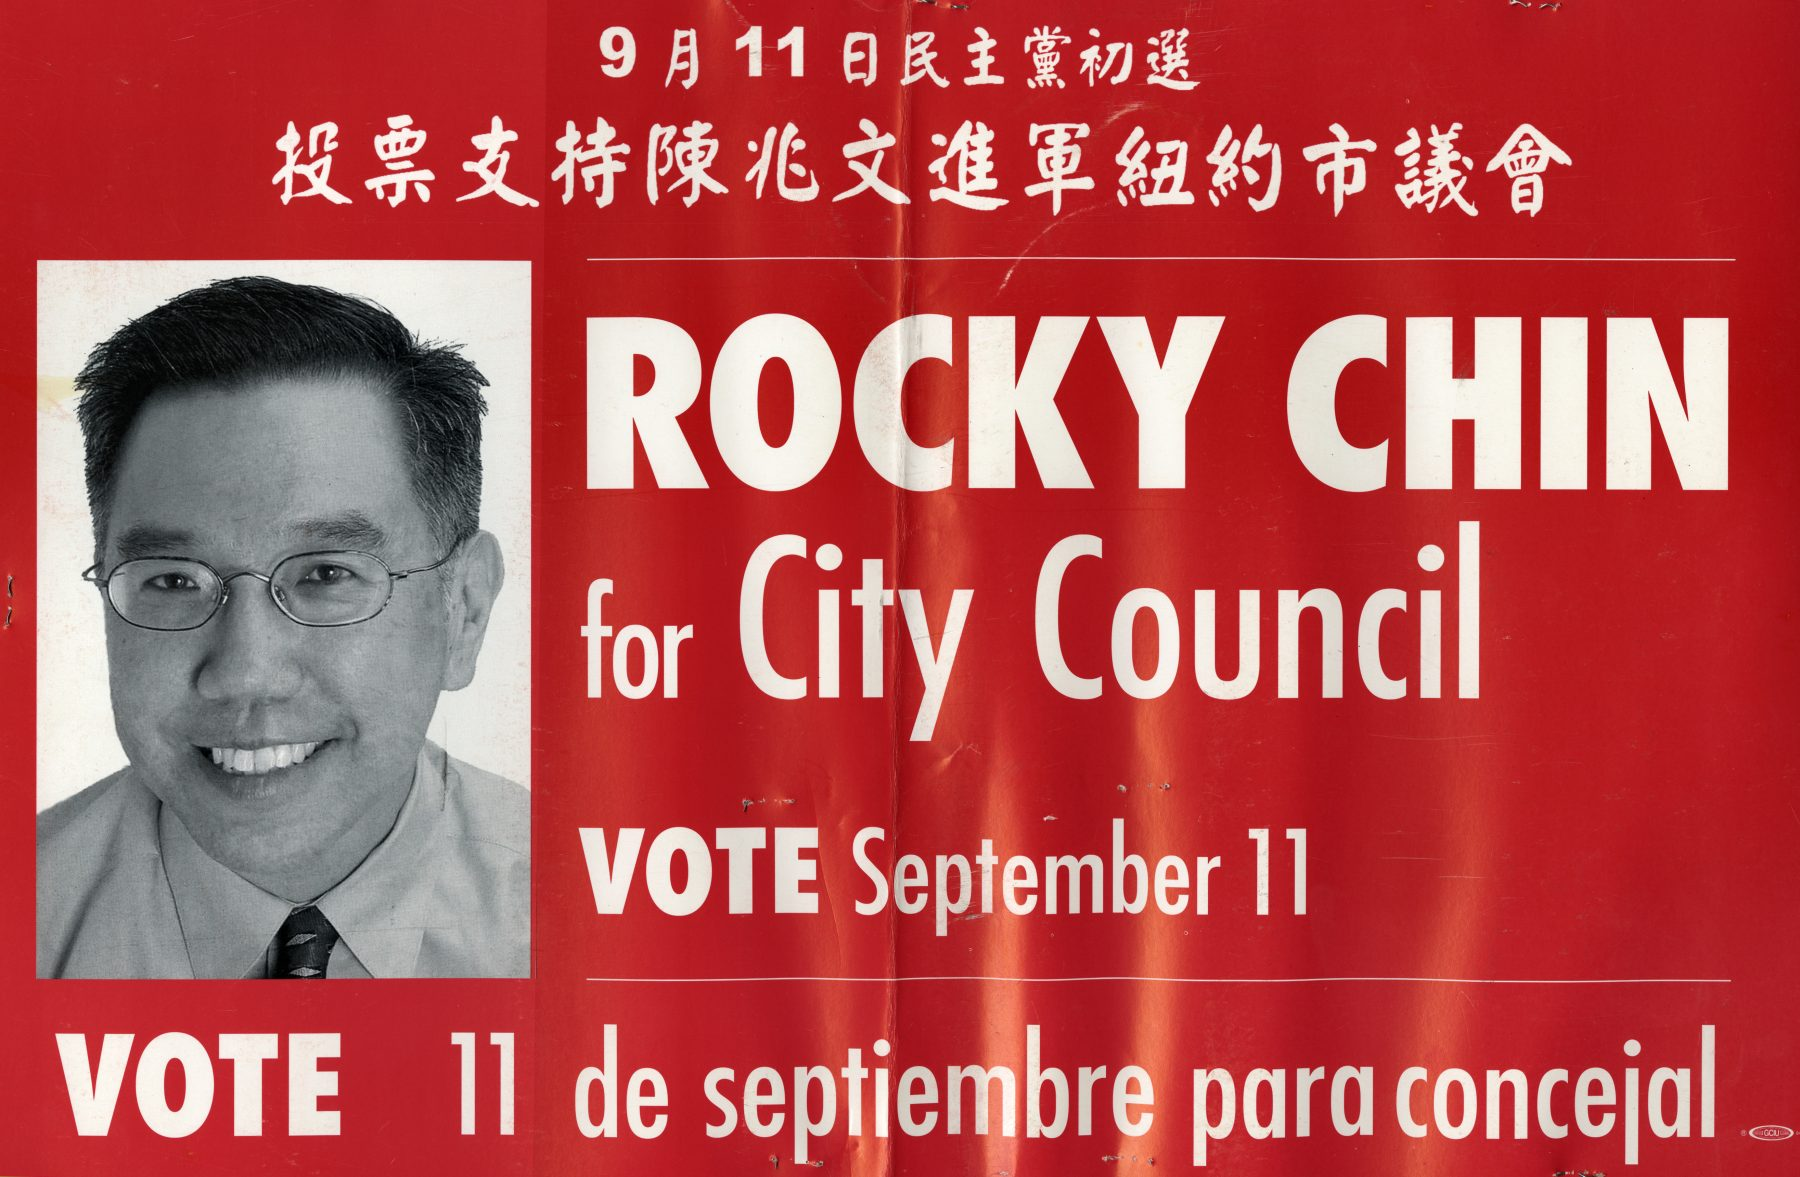 14 October 2019 Posted. Rocky Chin for City Council Election Poster, 2001, Courtesy of Rocky Chin, Museum of Chinese in America (MOCA) Collection. 陈兆文竞选市议员的海报,2001年,陈兆文捐赠,美国华人博物馆(MOCA)馆藏